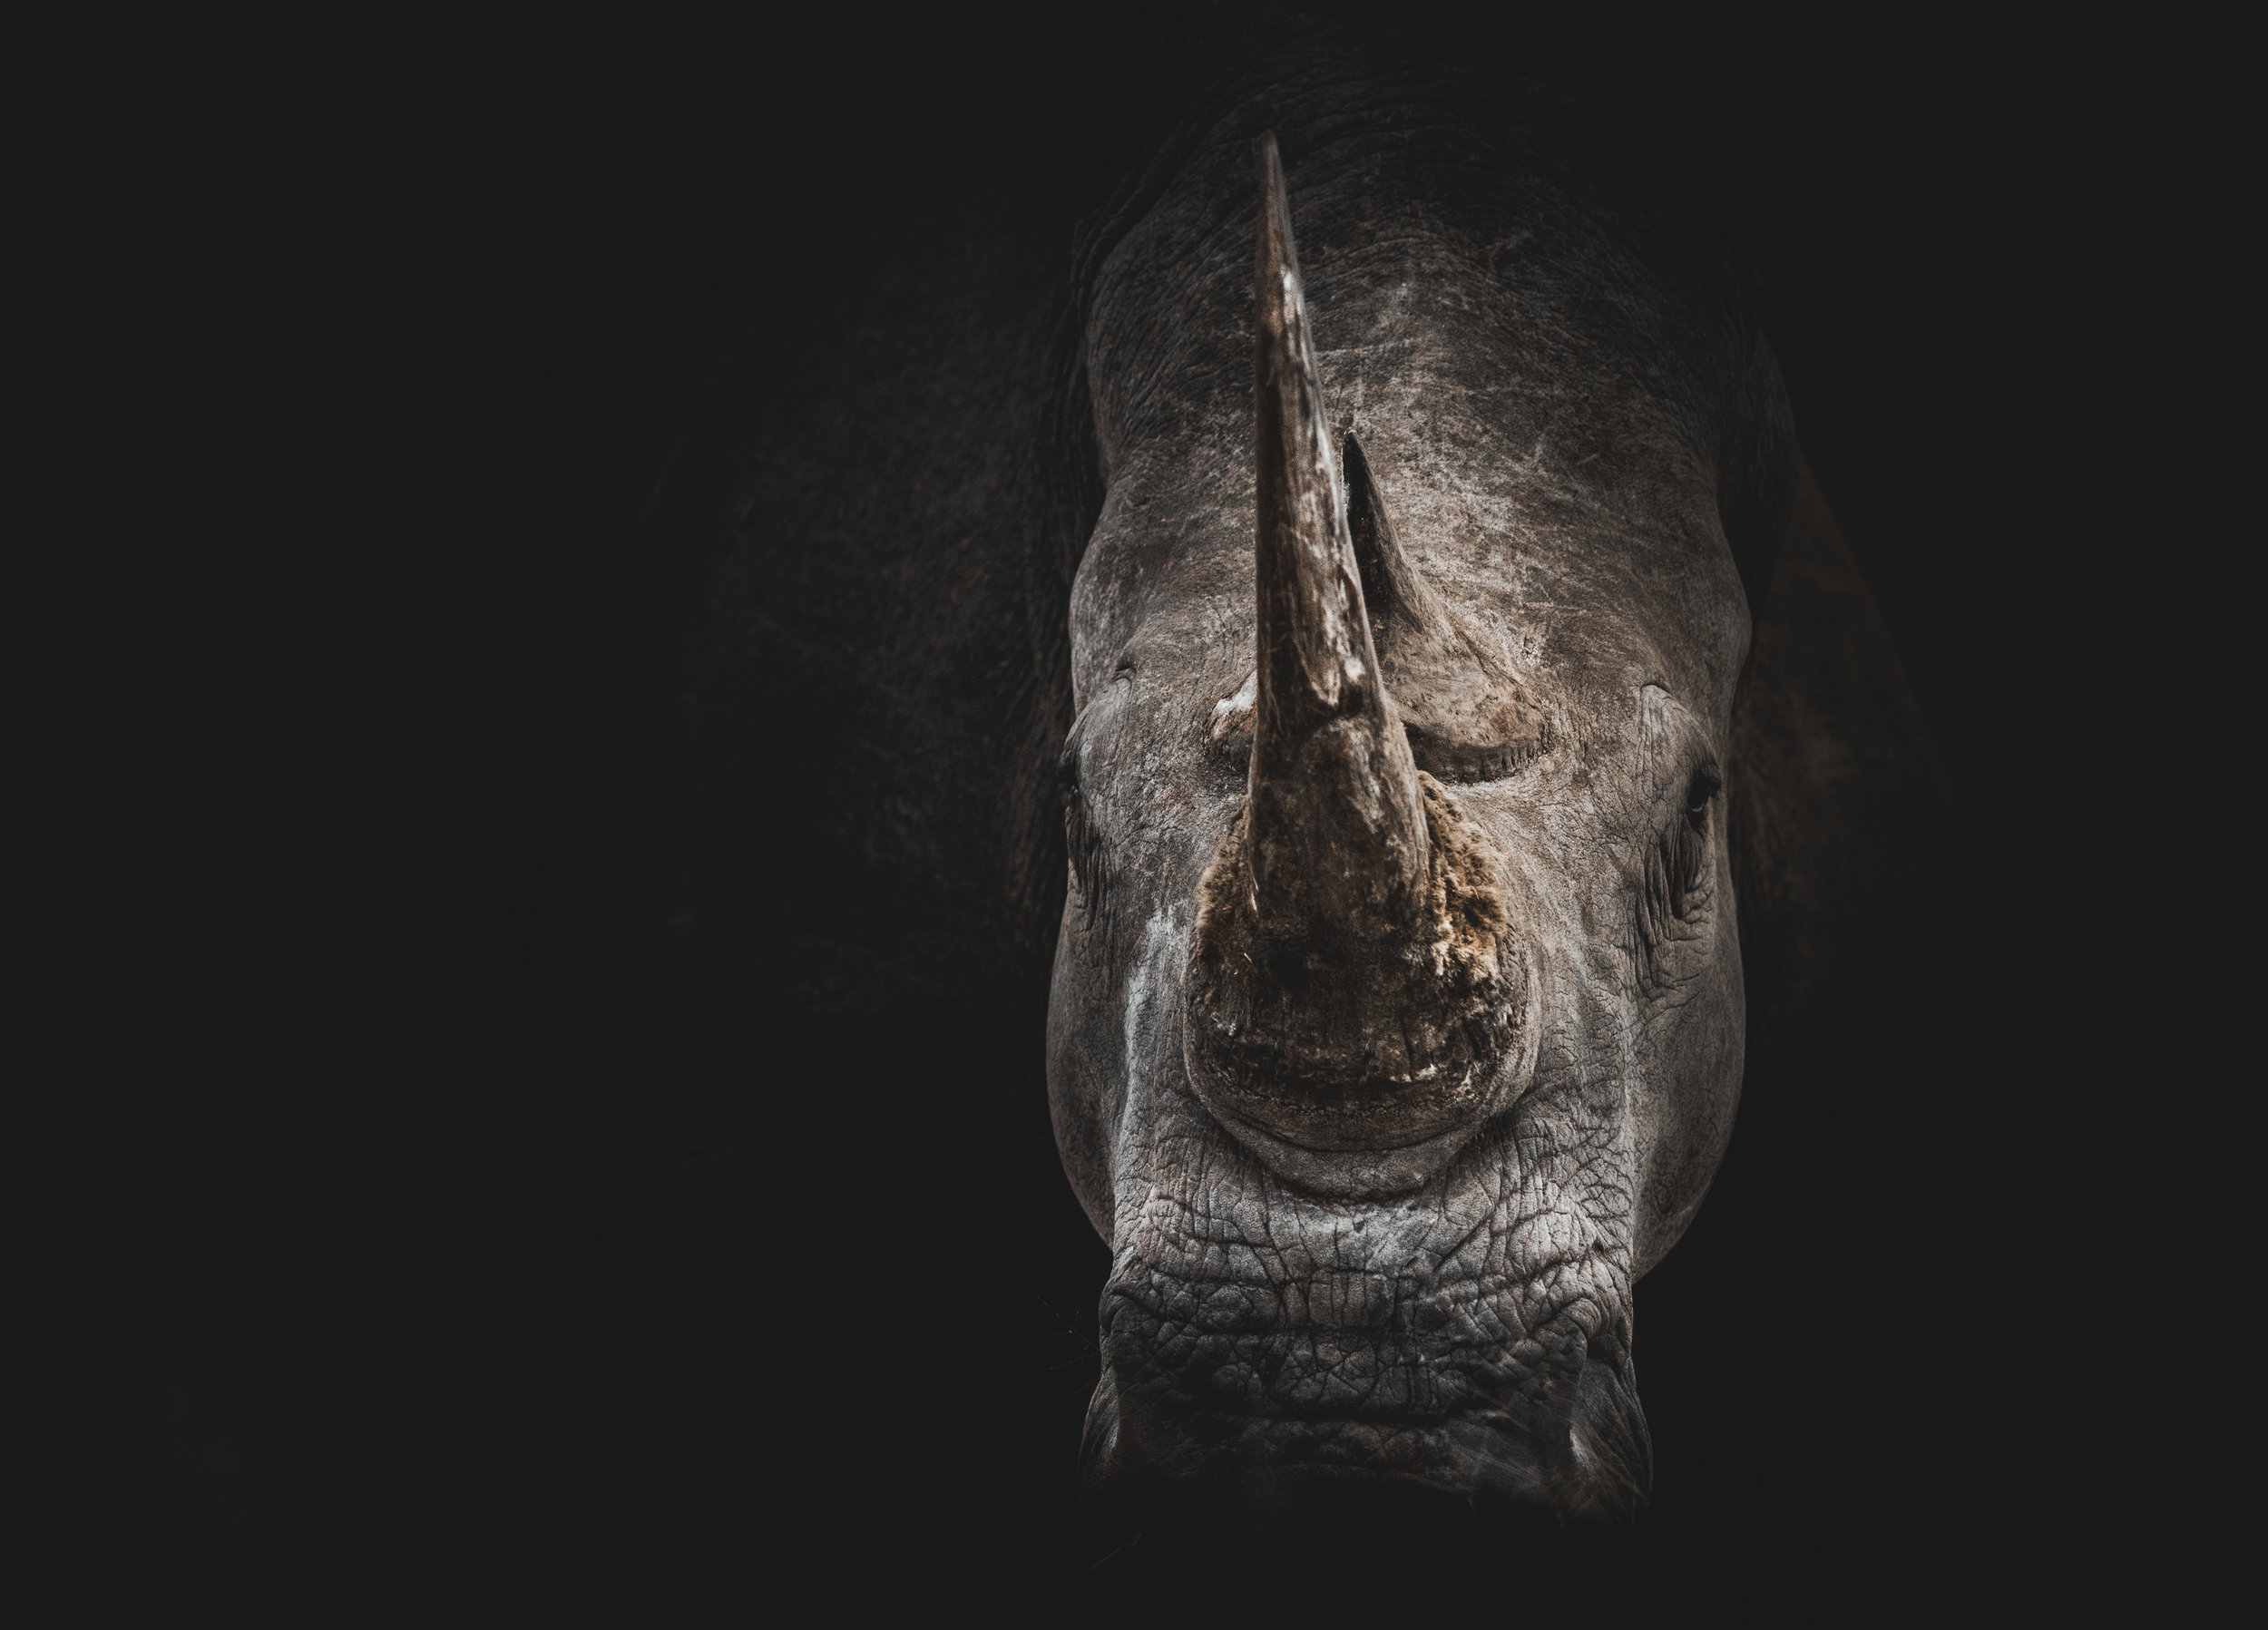 The Rhinoceros - One of nature's most powerful species, the Rhinoceros is a symbol for fortitude, confidence, and a willingness to fight if necessary; it is unafraid to challenge anything that might stand in its way. Here at Logan Legal, PA, we are happy to remind you that this strength and spirit is within you, too.